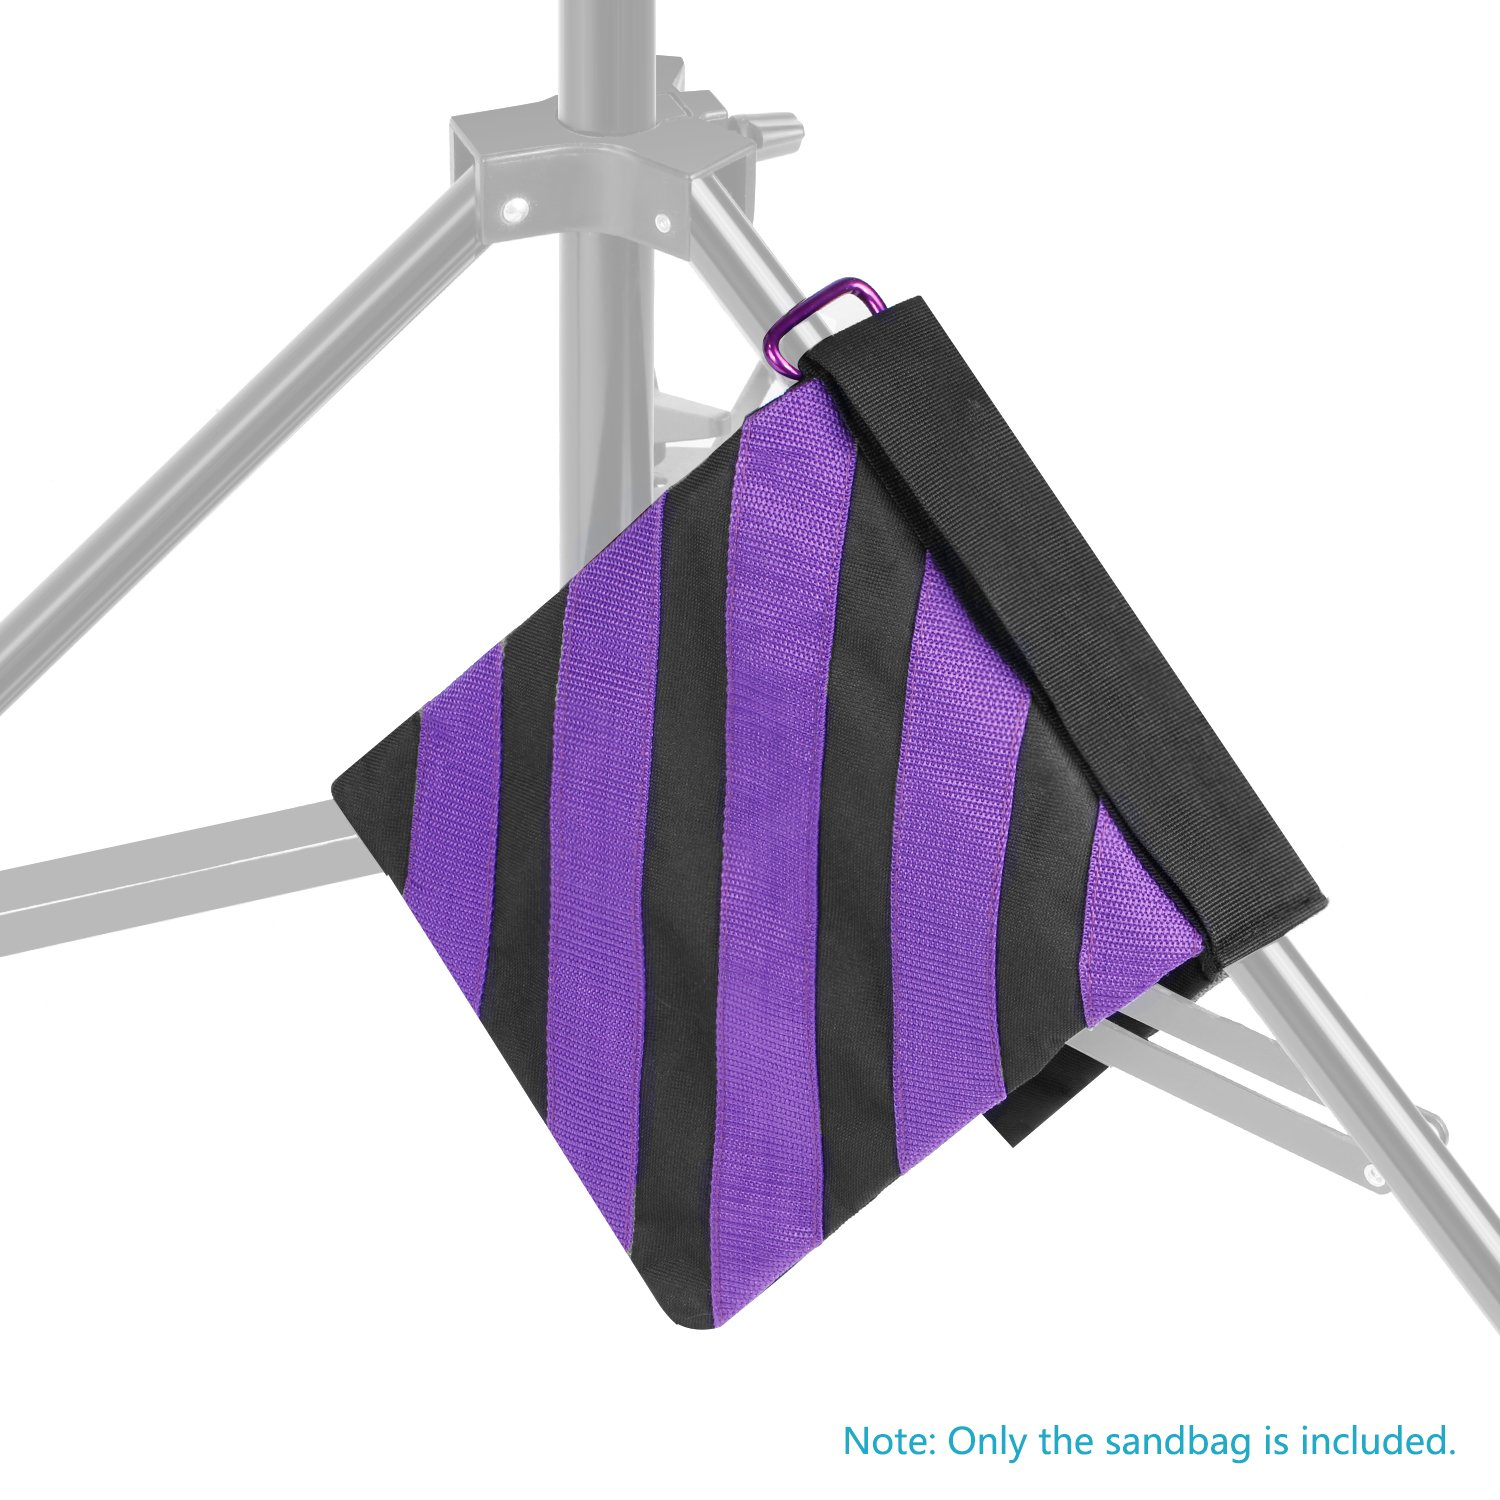 Boom Arms Neewer 4-Pack Empty Photographic Sandbag Studio Video Stage Film Sand Bag Saddlebag Tripods Purple//Black 9x10 inches//23x25 centimeters 20 pounds Load-bearing for Light Stands